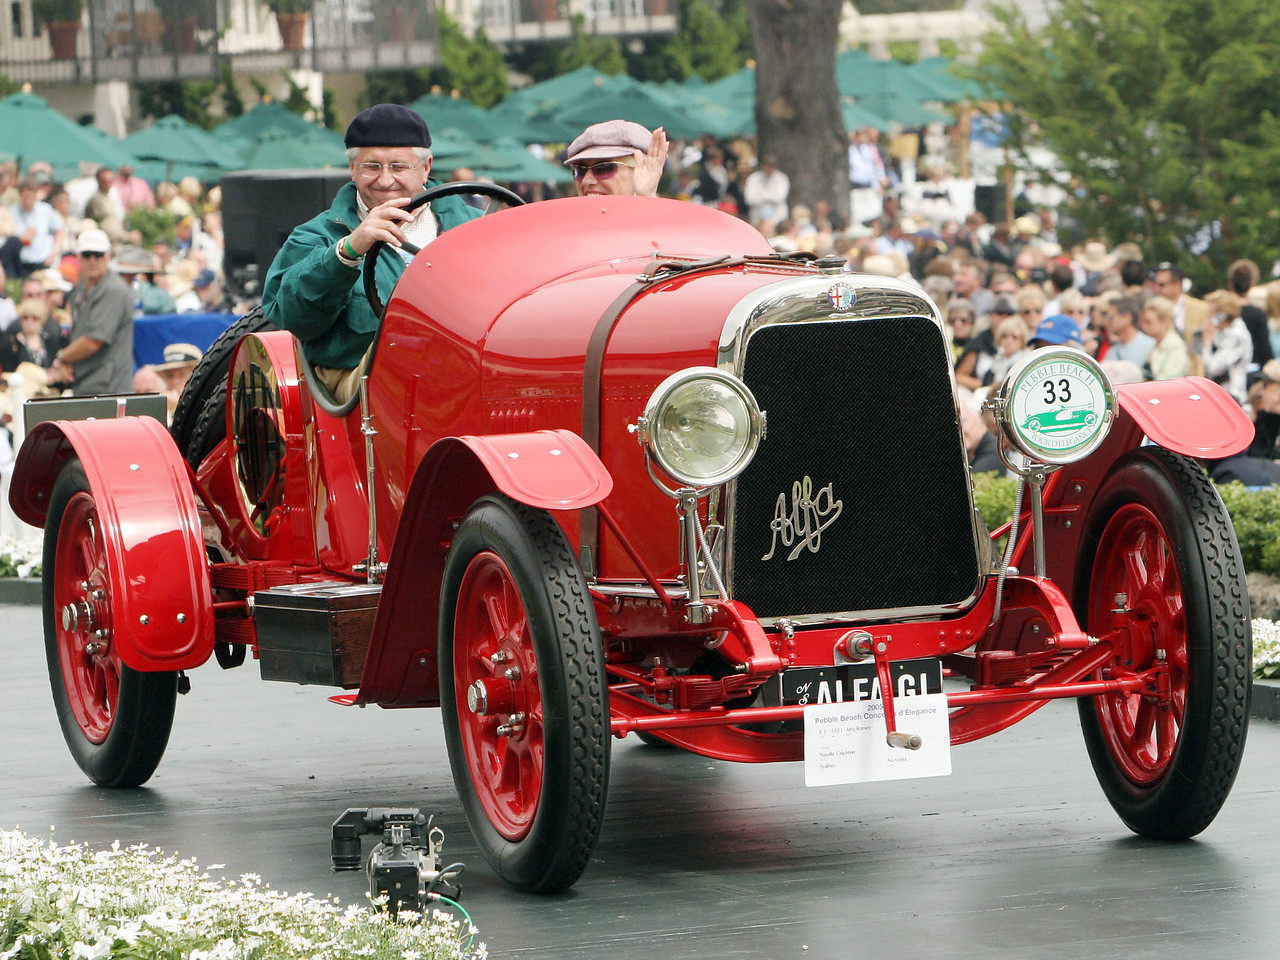 1921 Alfa Romeo G 1 Sports owned by Neville Crichton from Sydney, Australia 3rd Class E-3 (Alfa Romeo 6 Cylinder to 1933)